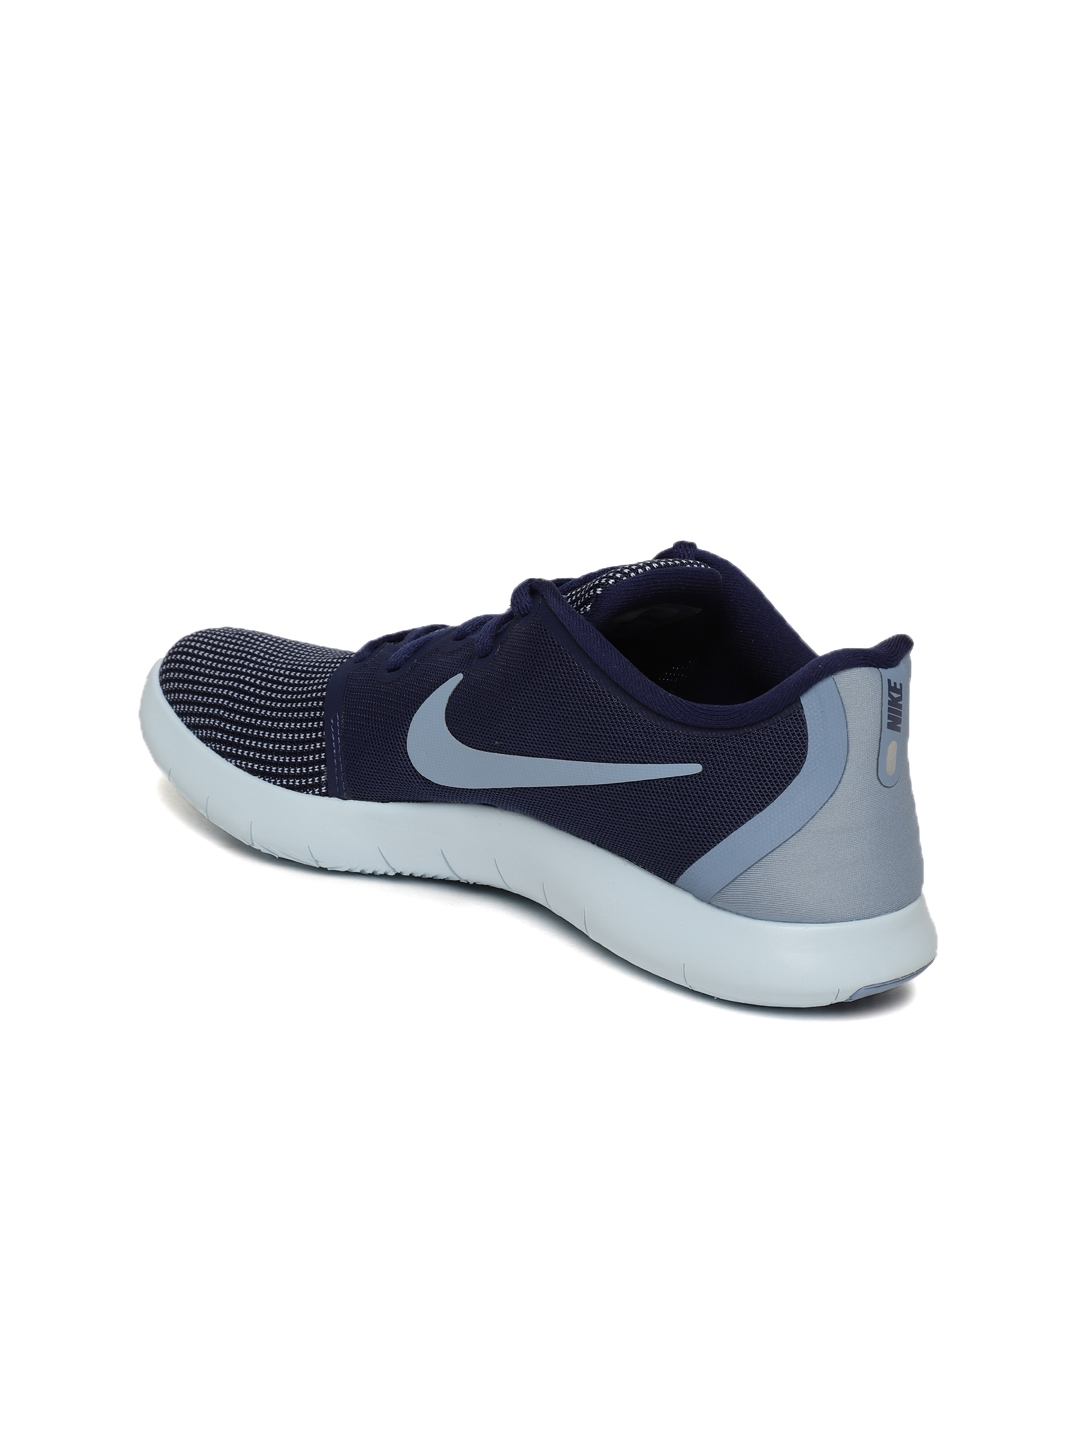 9e71d4f522489 Buy Nike Women Navy Blue Flex Contact 2 Running Shoes - Sports Shoes ...